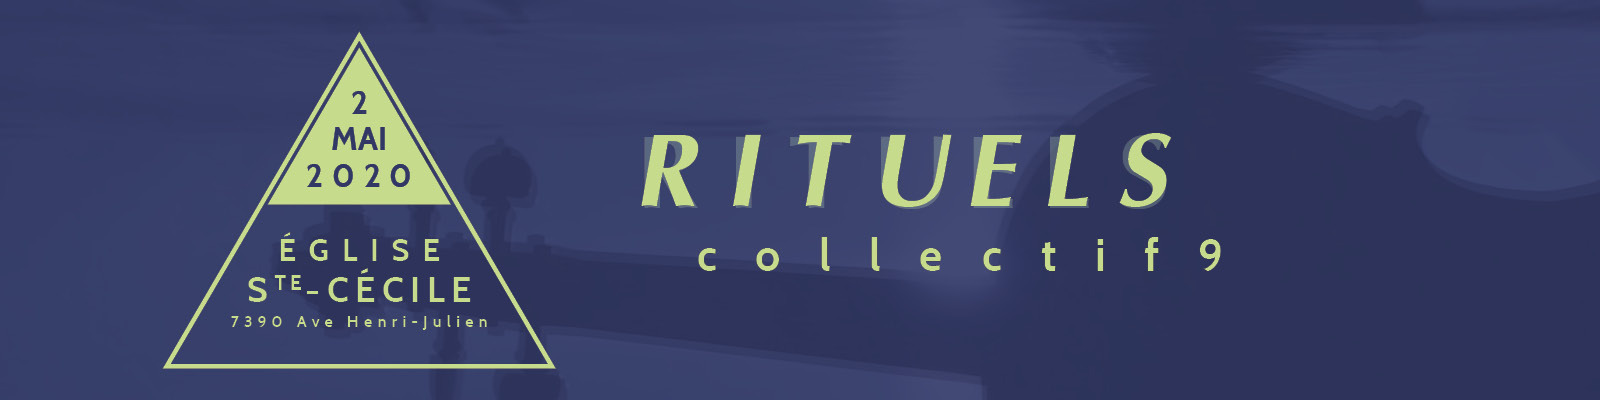 collectif9 - Rituels